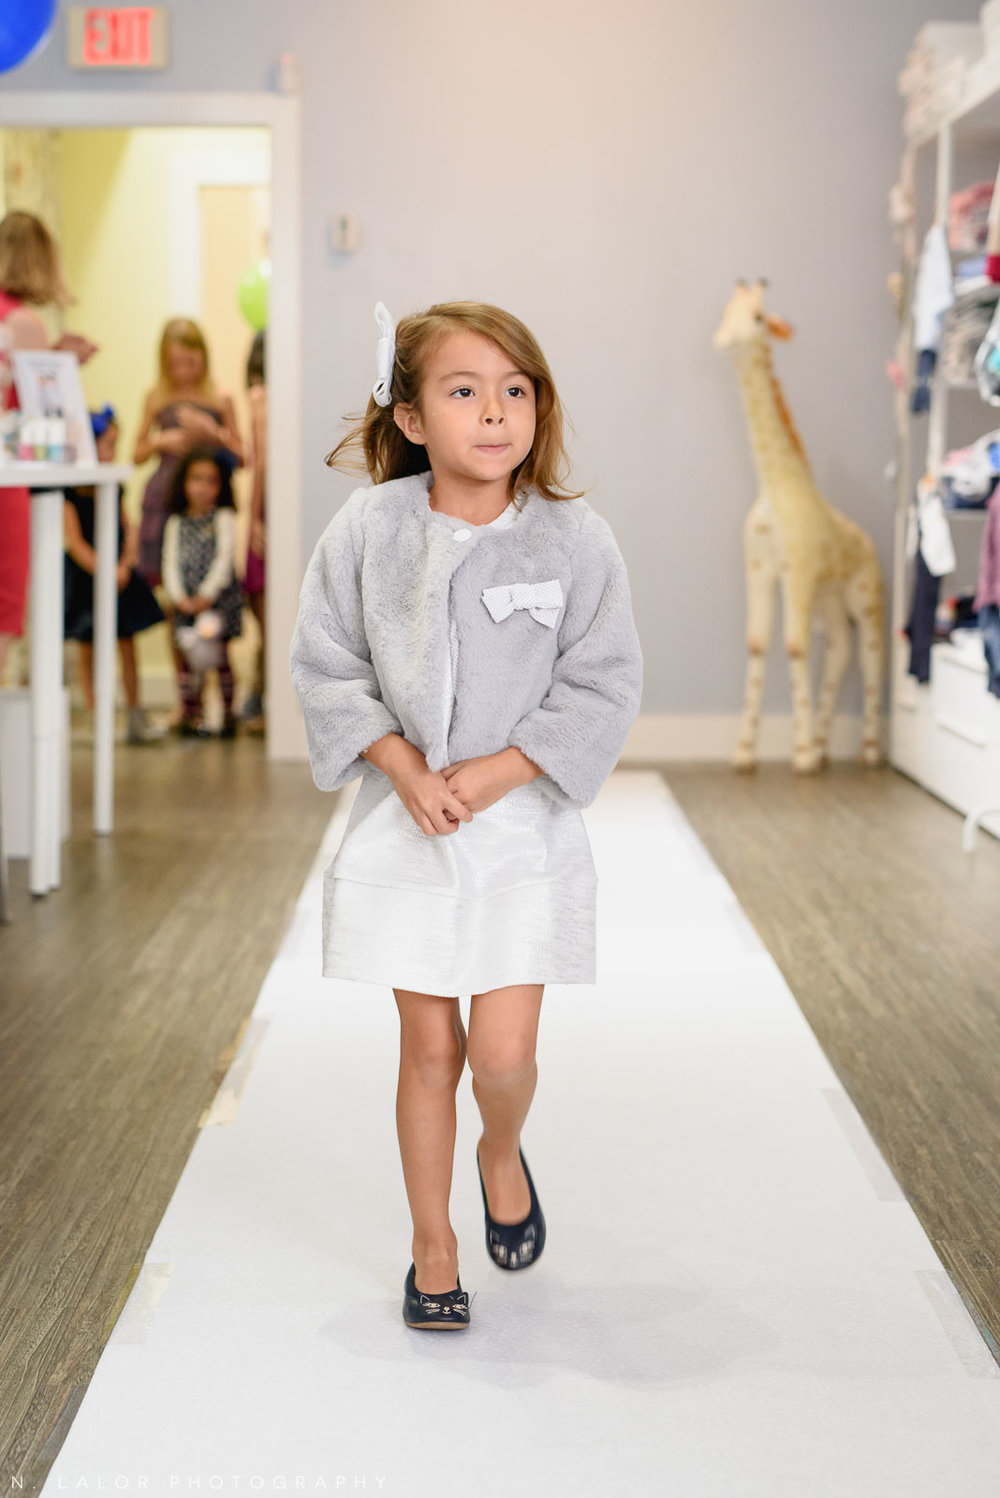 2017 Kids Fall Fashion Show at Ella & Henry in New Canaan, CT. Image by N. Lalor Photography.